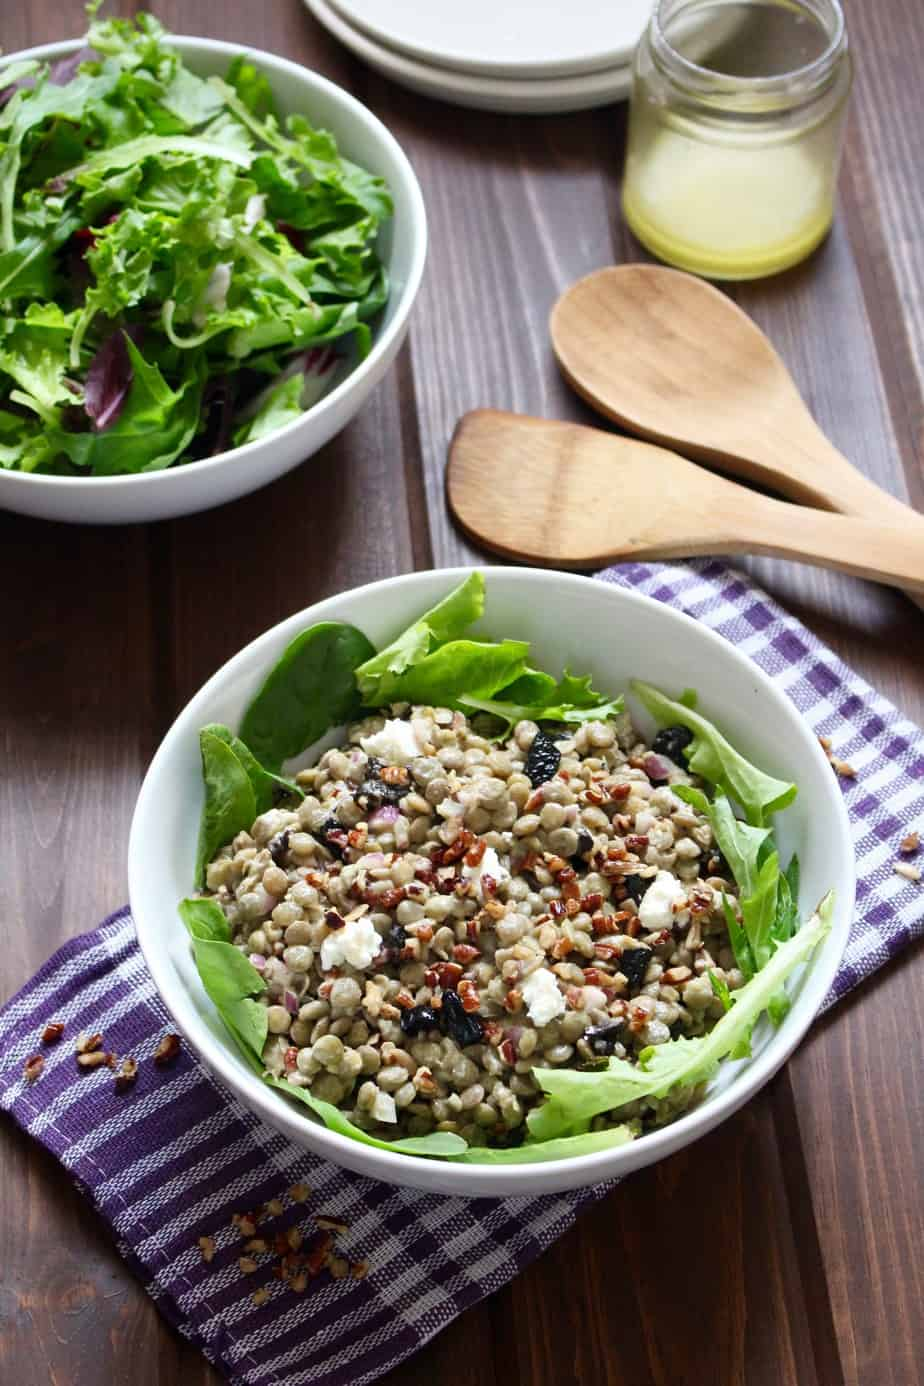 Cherry Lentil Goat Cheese Salad | Frugal Nutrition